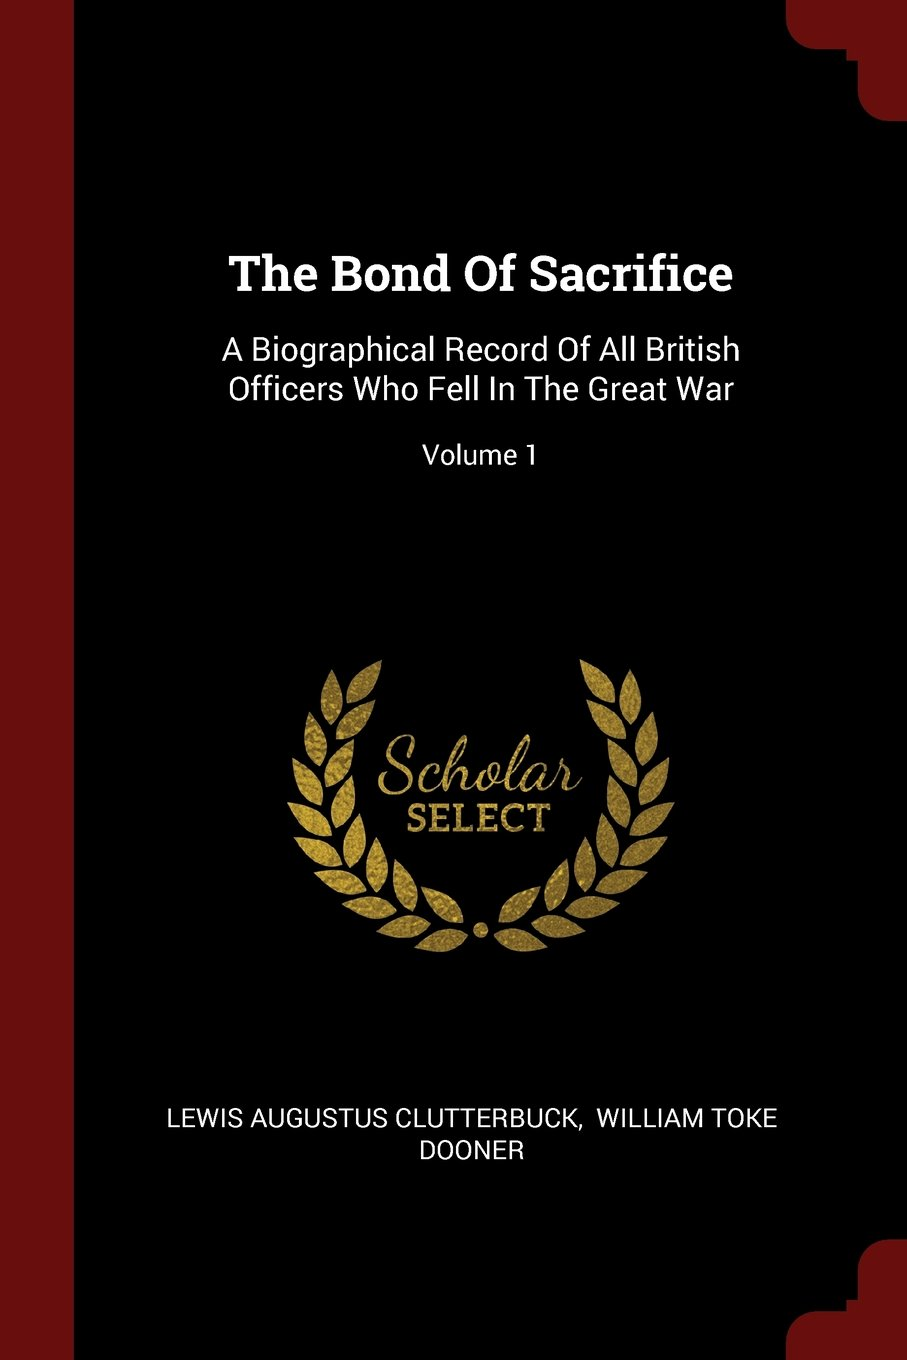 Download The Bond Of Sacrifice: A Biographical Record Of All British Officers Who Fell In The Great War; Volume 1 ebook